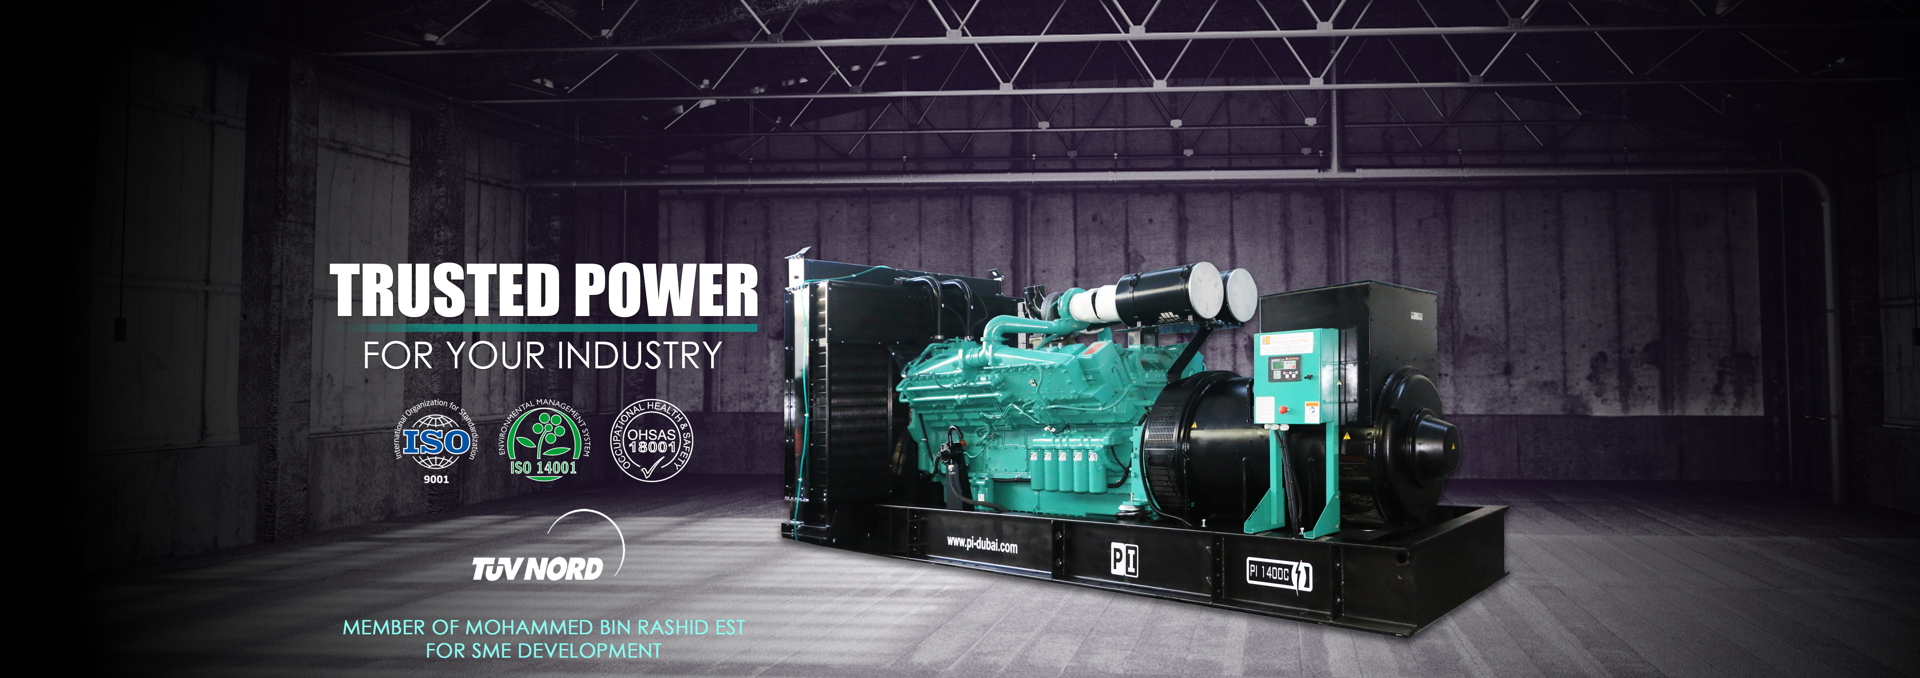 TRUSTED POWER FOR YOUR INDUSTRY